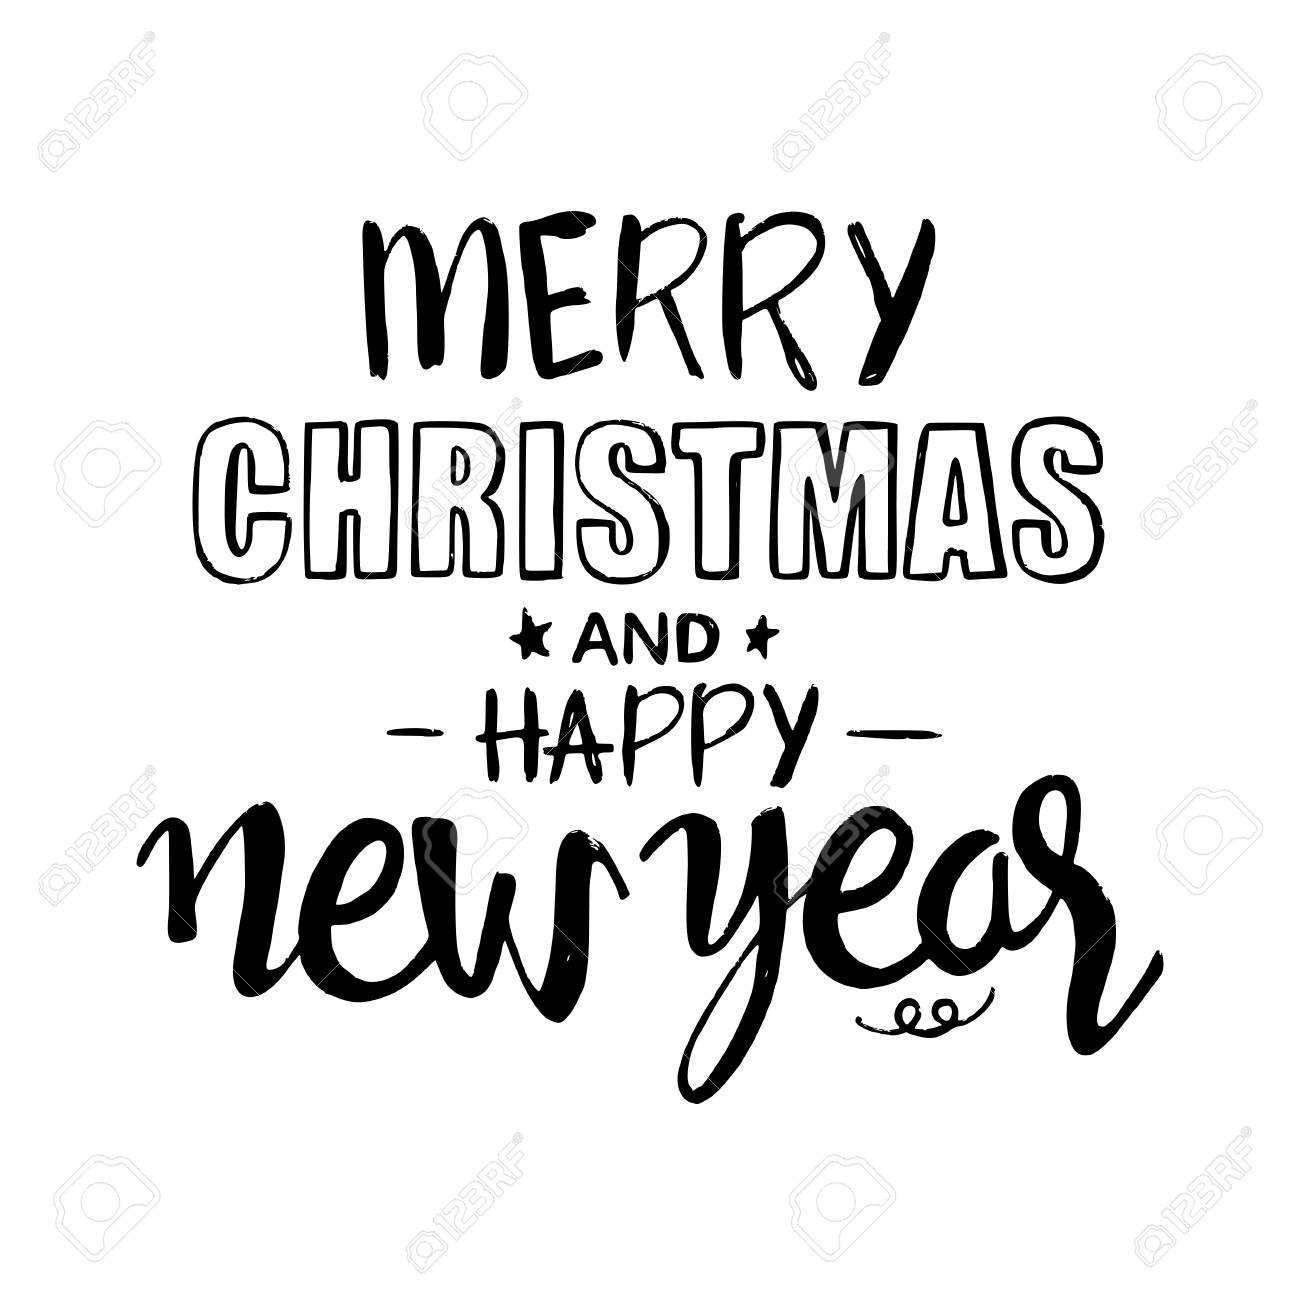 merry christmas and happy new year lettering modern hand drawn royalty free cliparts vectors and stock illustration image 64208455 merry christmas and happy new year lettering modern hand drawn